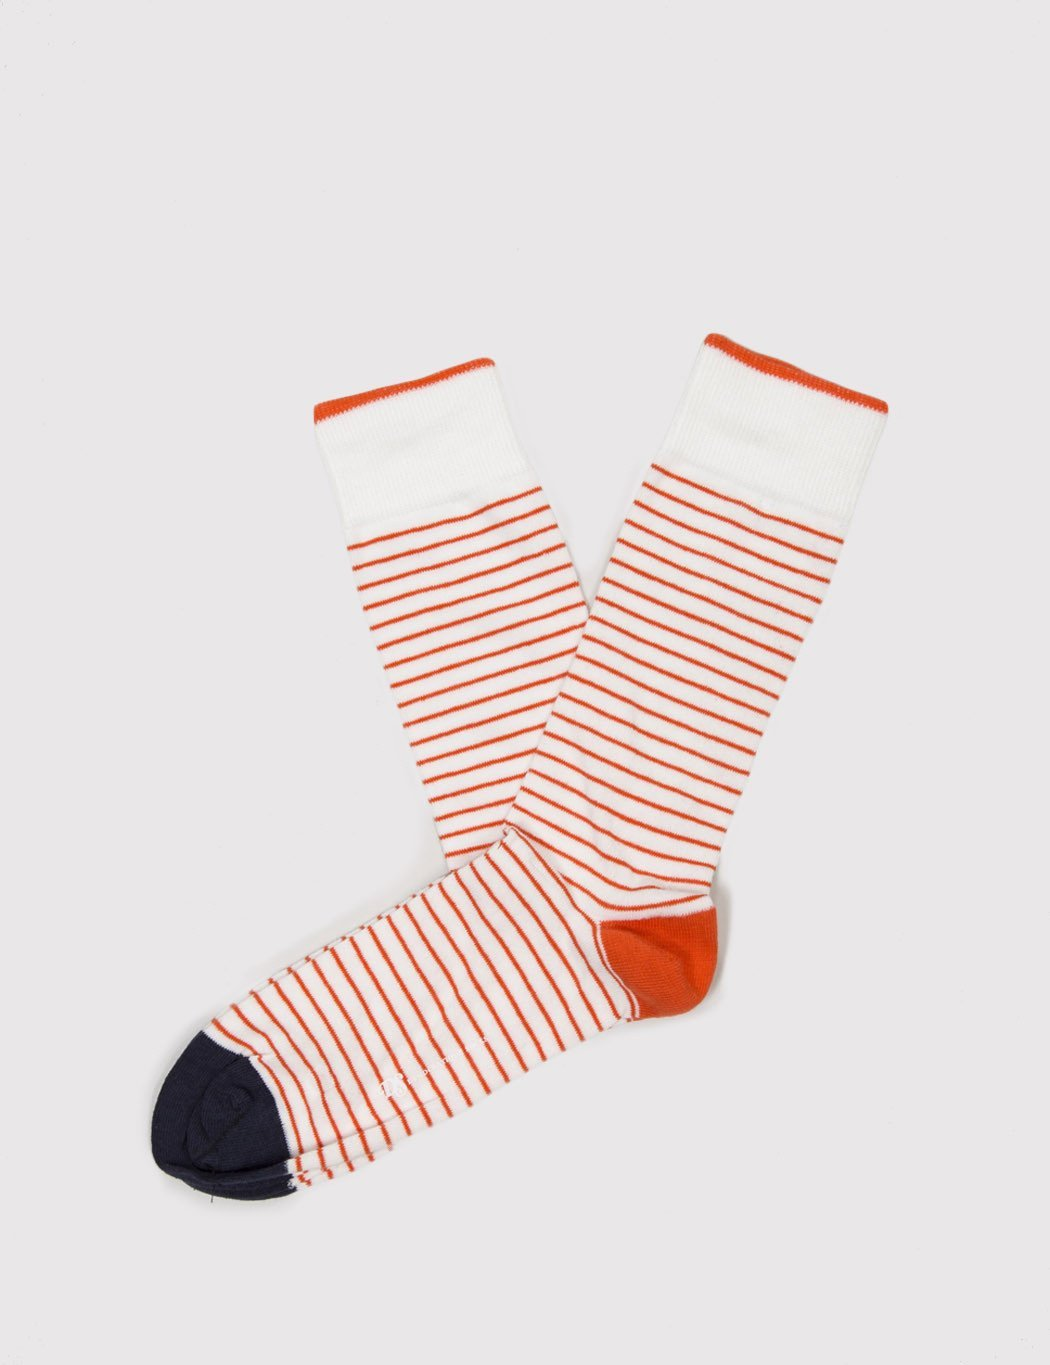 Democratique Original Mini Stripes - White/Orange/Navy